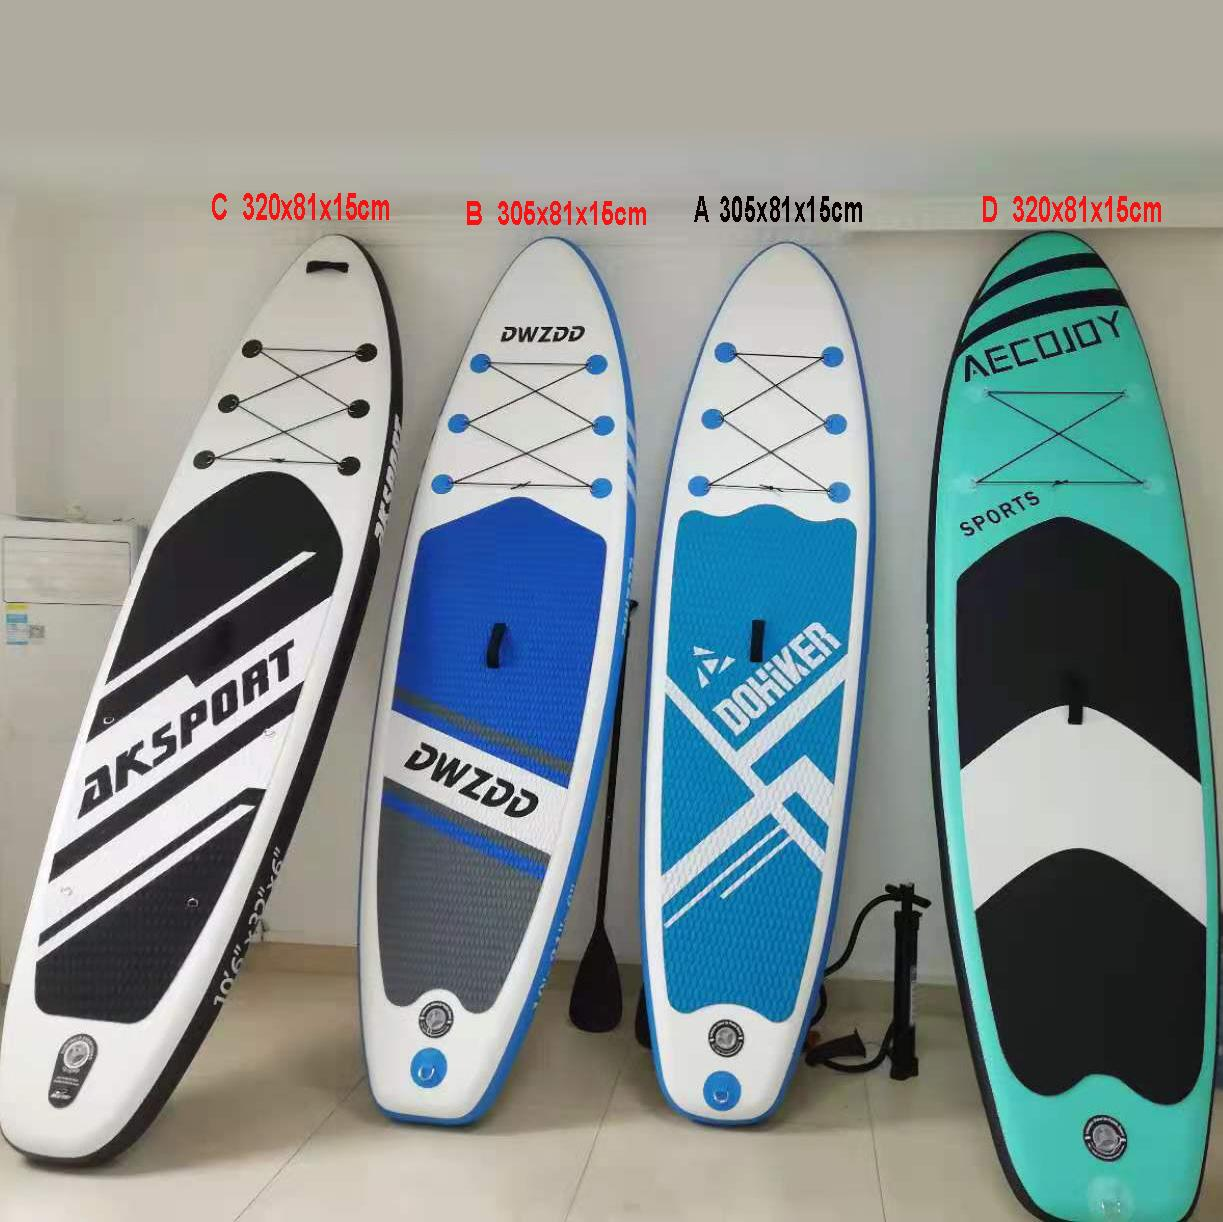 whole sale surfboard 320x81x15cm super stable inflatable paddle board ISUP stand up surfboards Yoga kayak For Floating and water sports in stock by ship with Duties